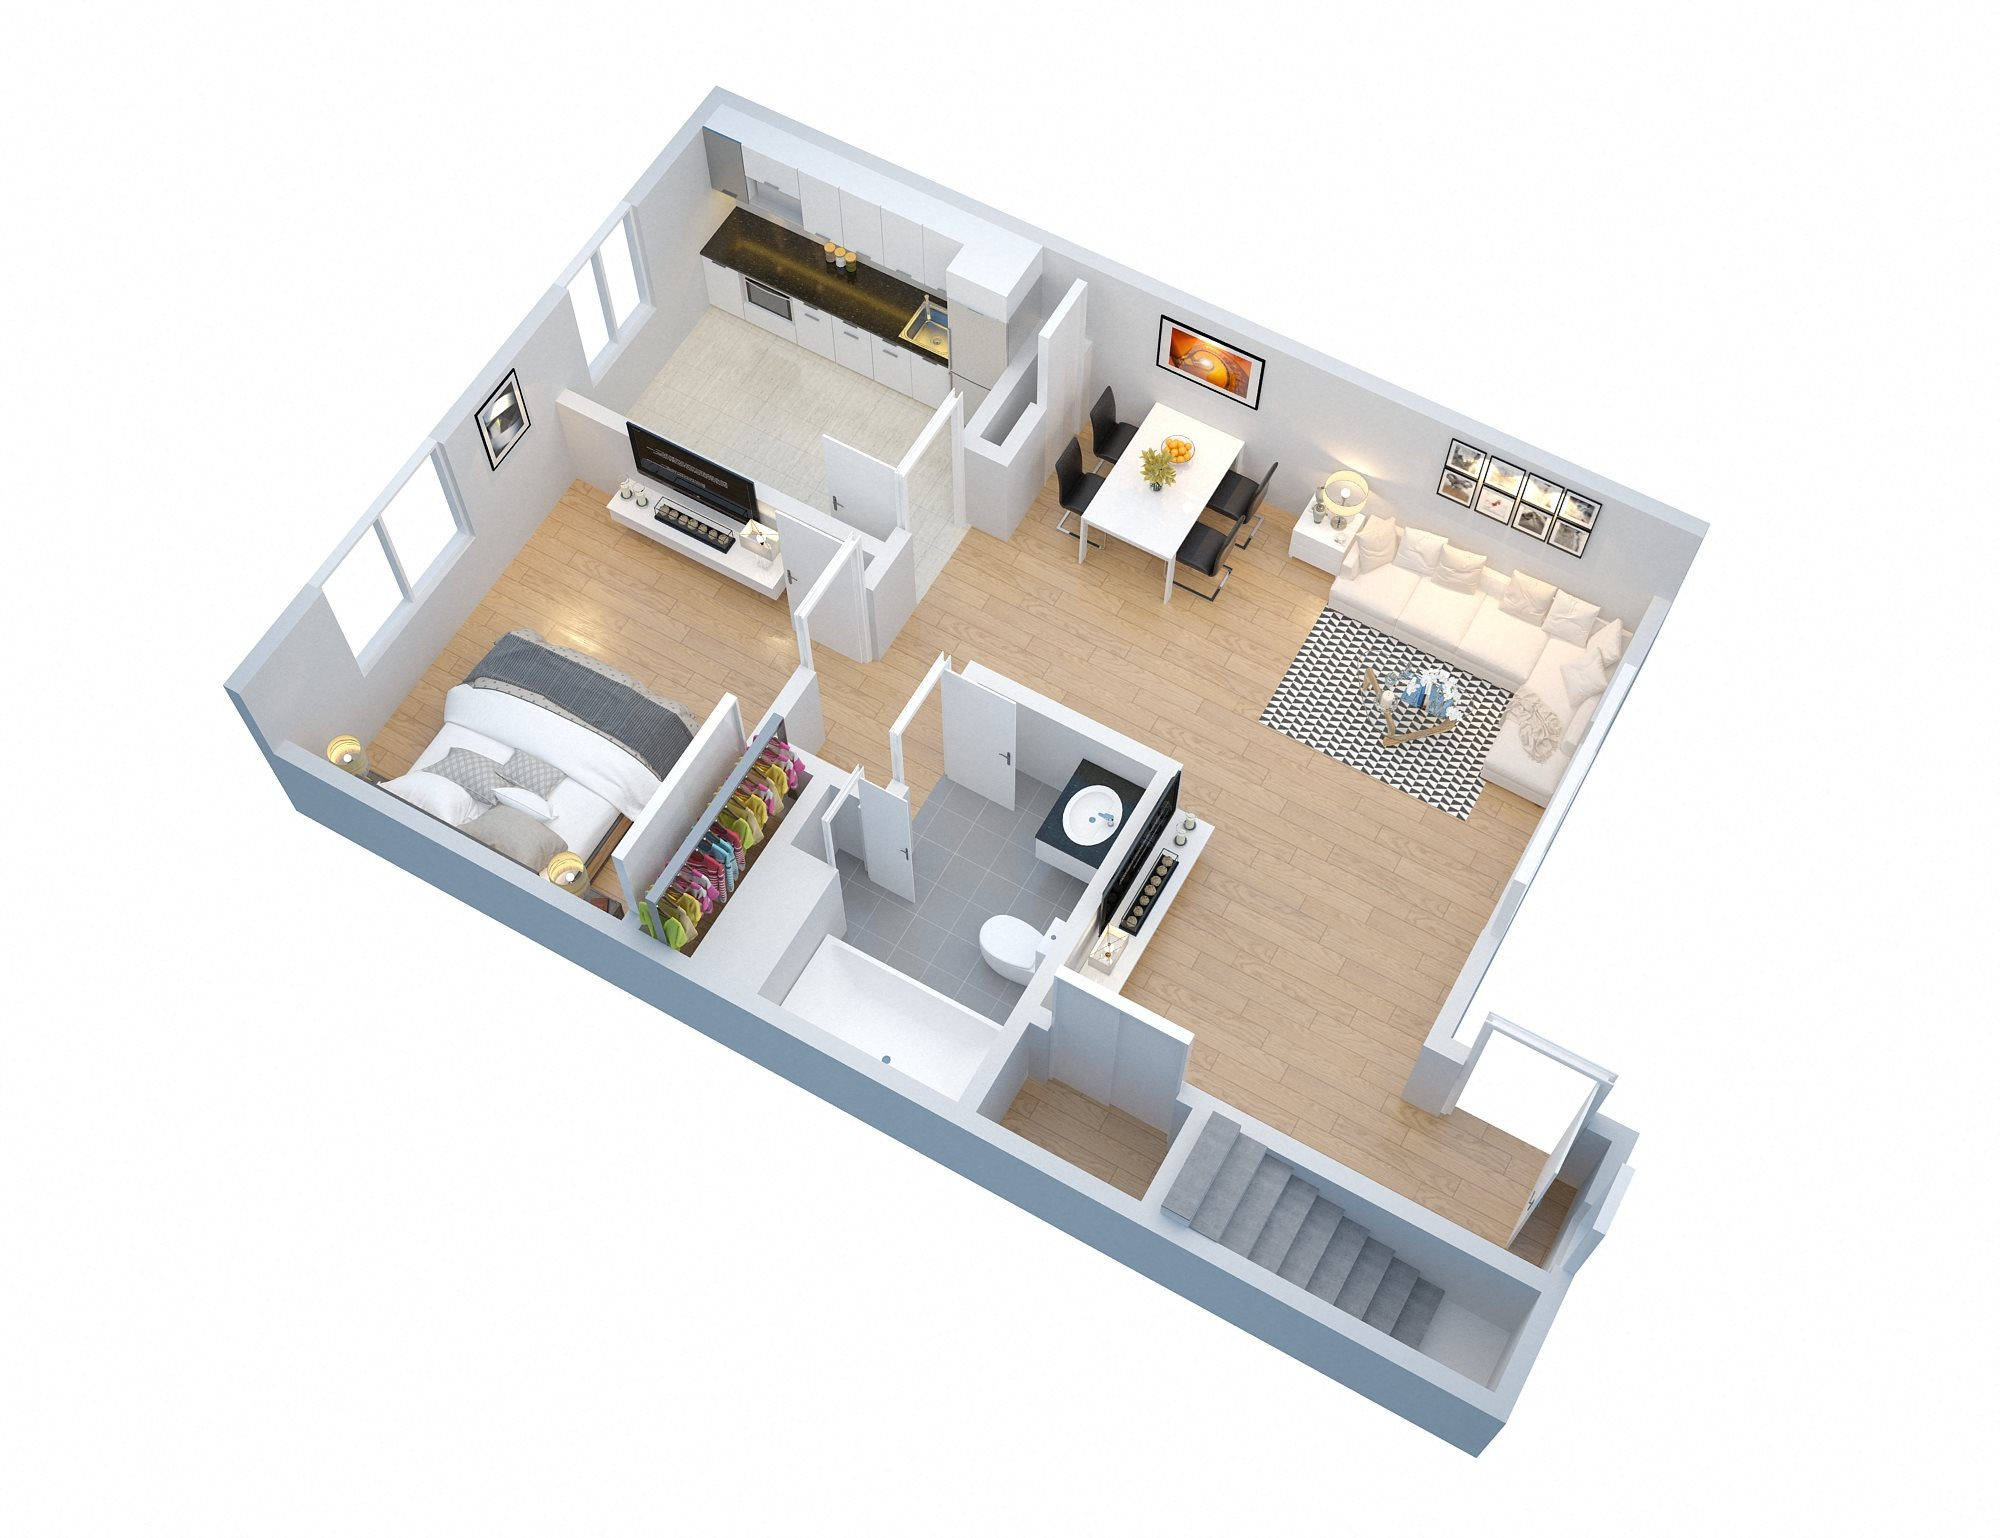 1 Bedroom with Garage Floor Plan 1